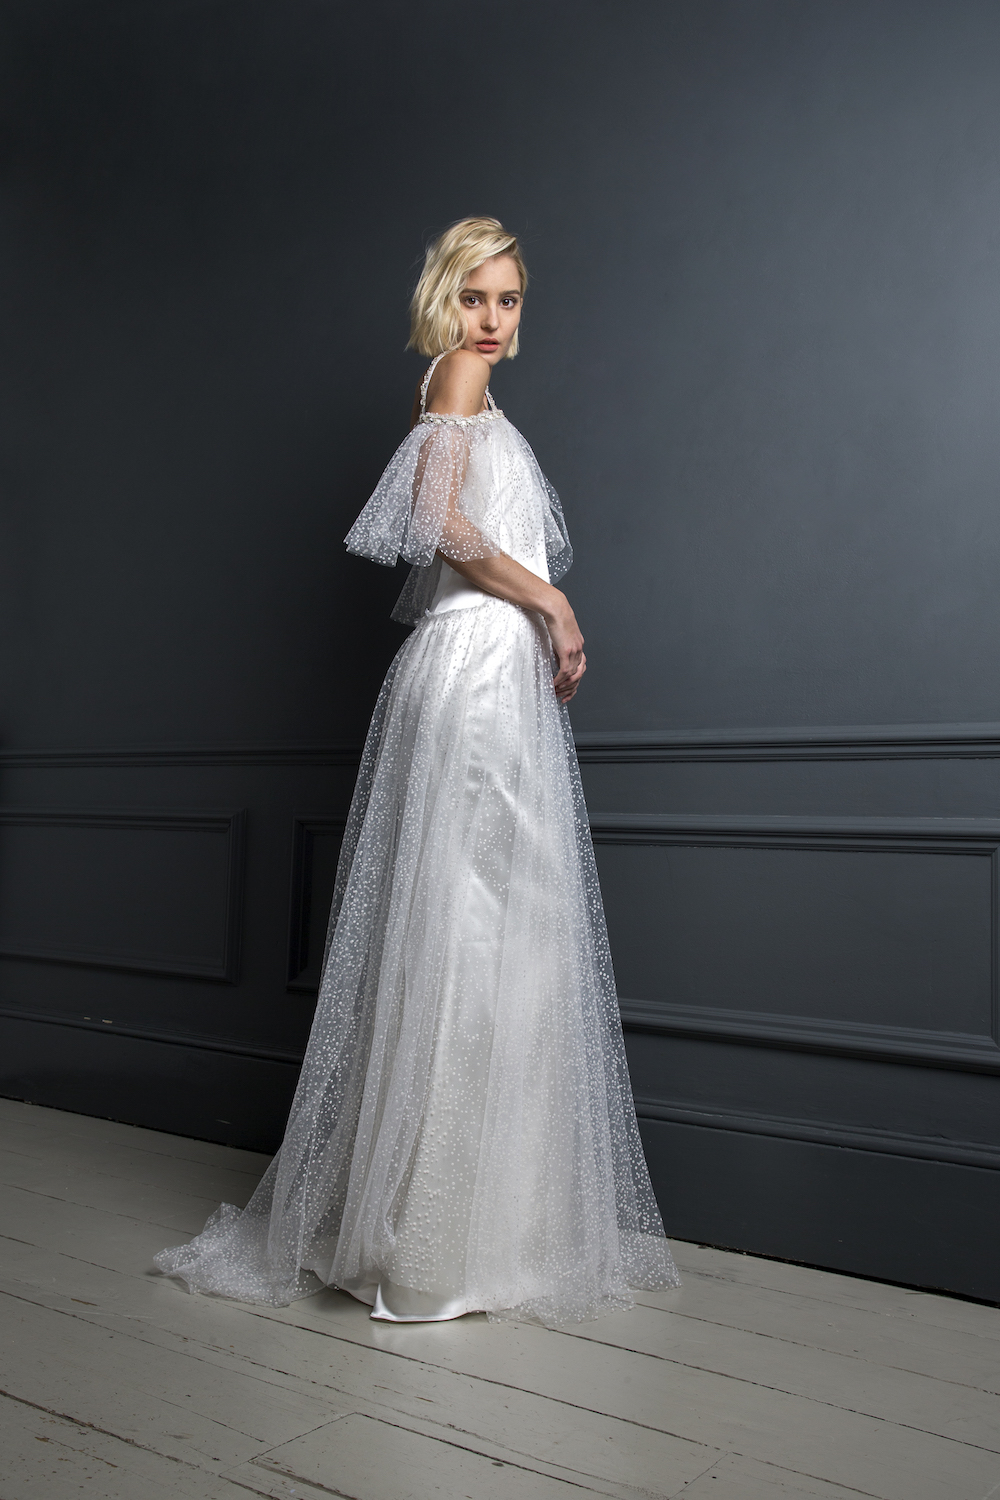 OSCAR DRESS | WEDDING DRESS BY HALFPENNY LONDON